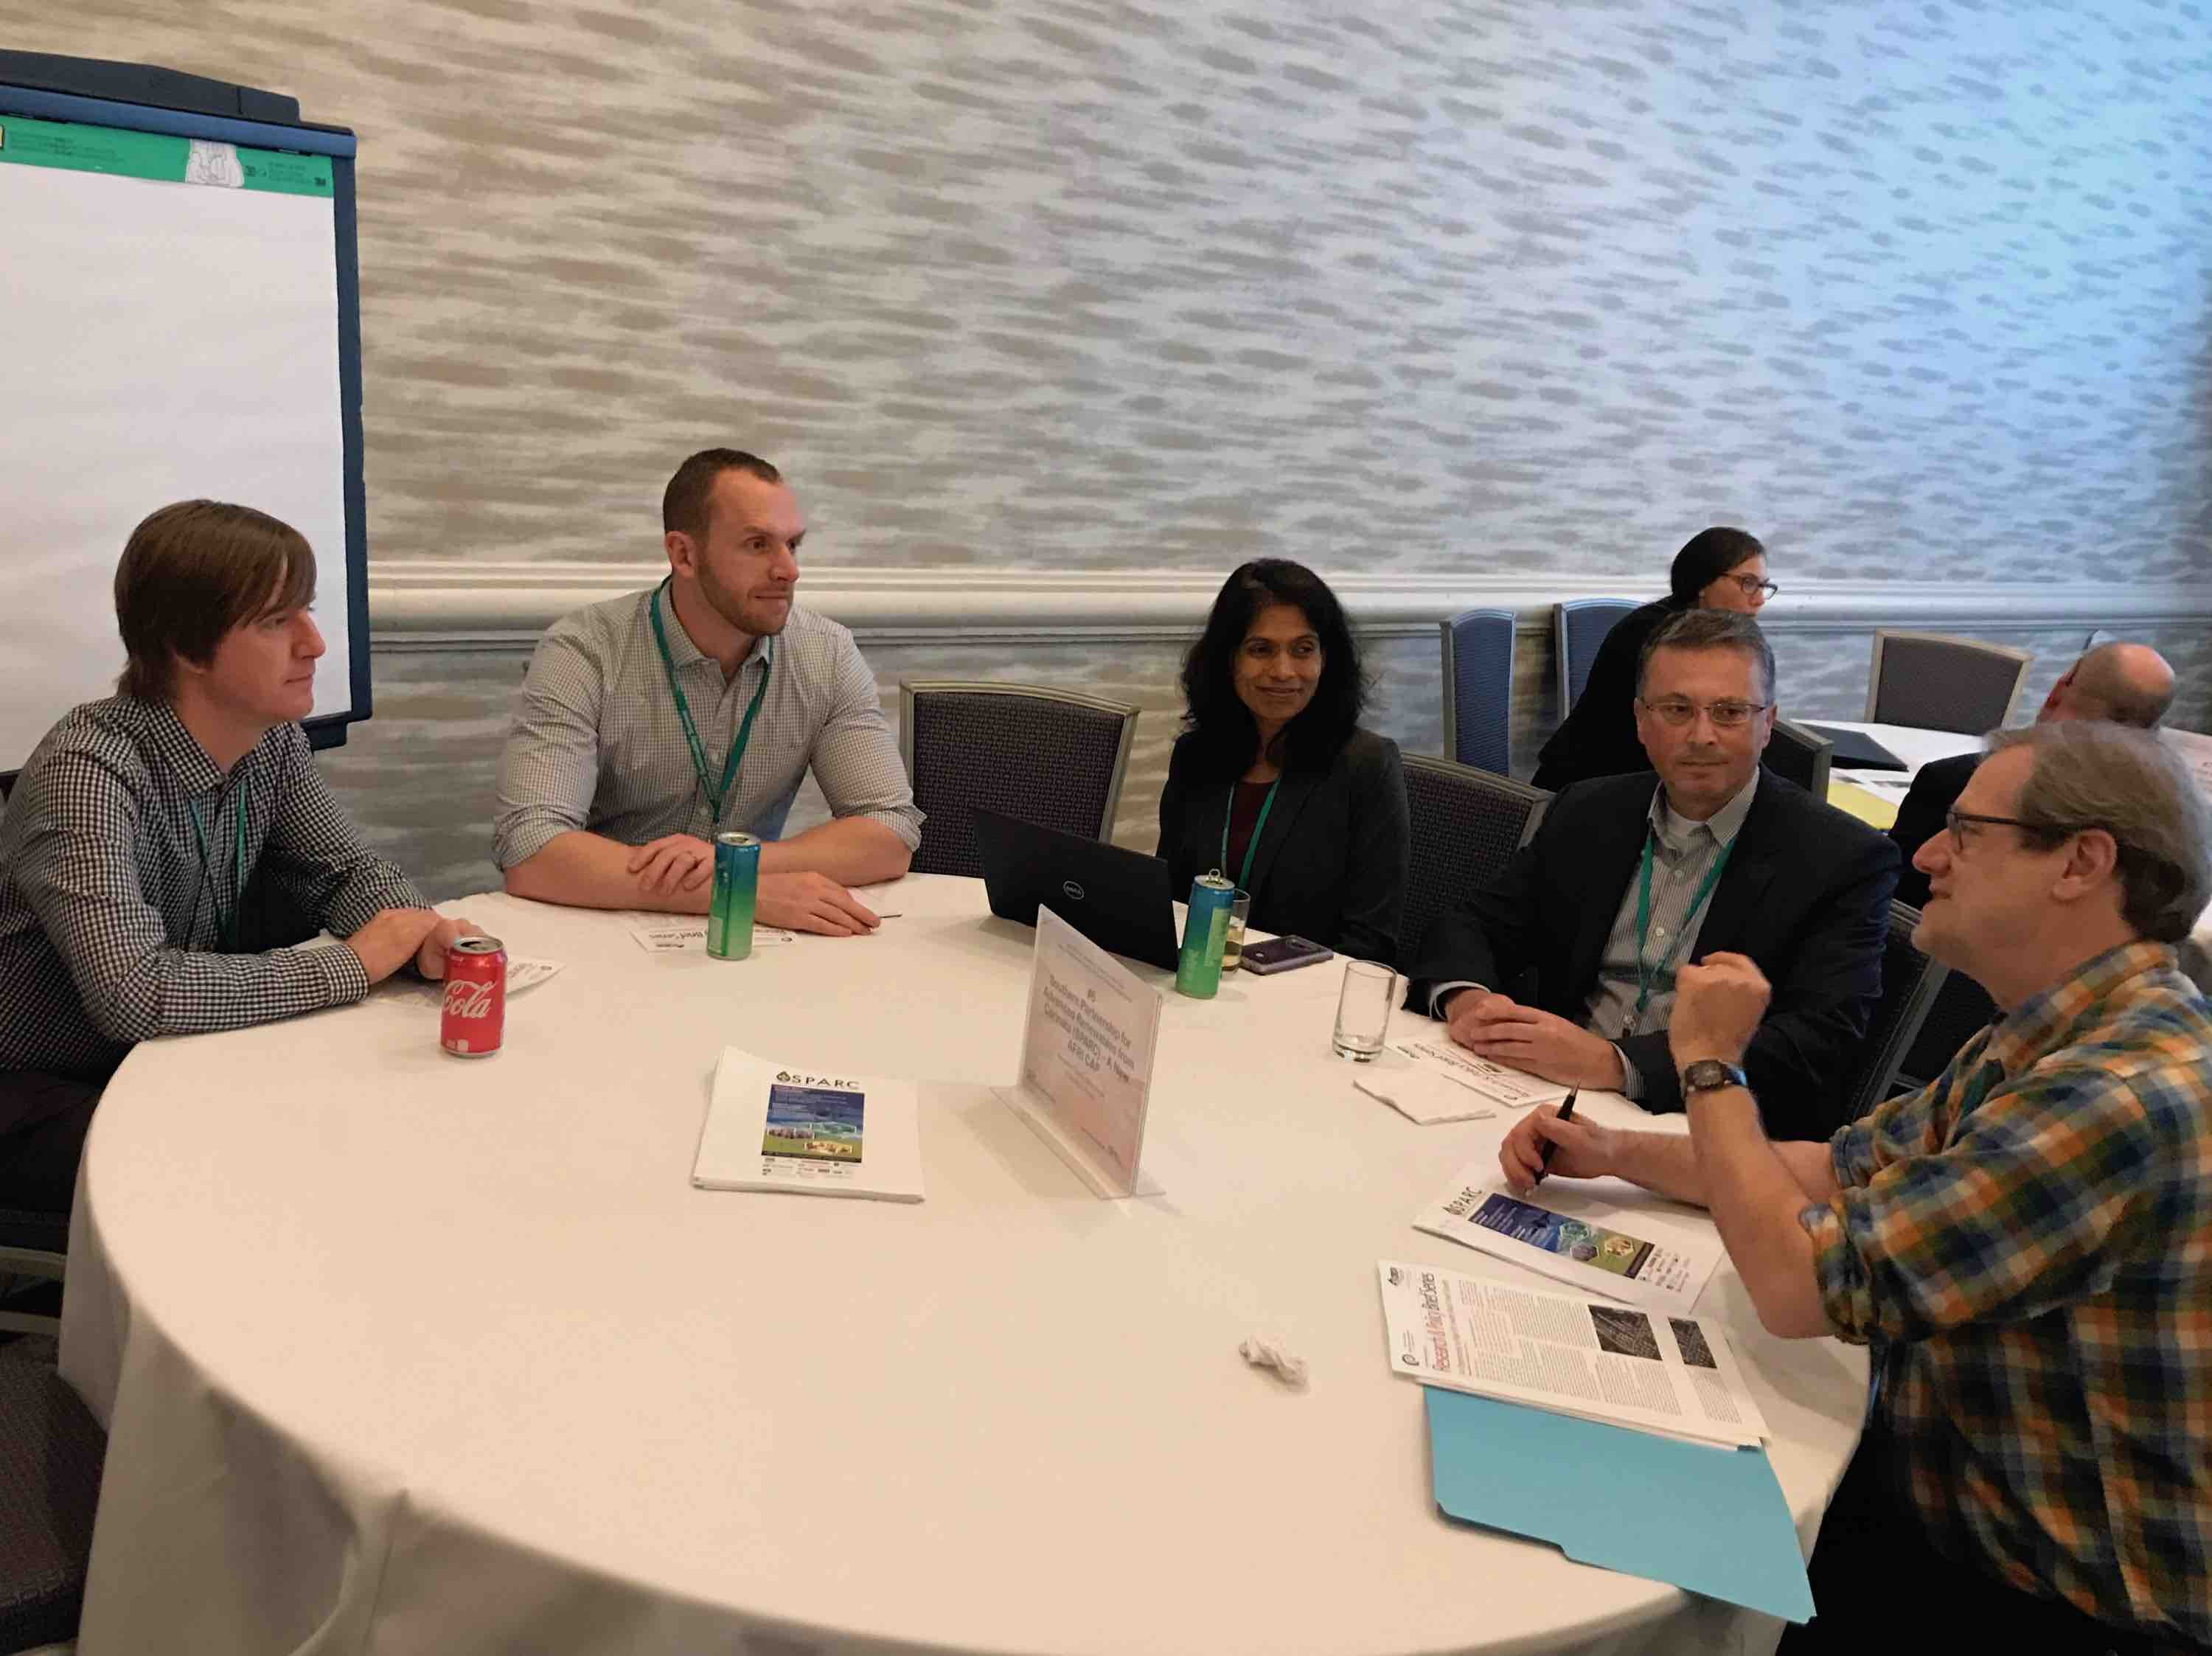 Dan Geller, Ben Christ, Sheeja George, and George Philippidis participate in a roundtable discussion on SPARC and Carinata at the NSS-NEES meetings in Tampa, FL